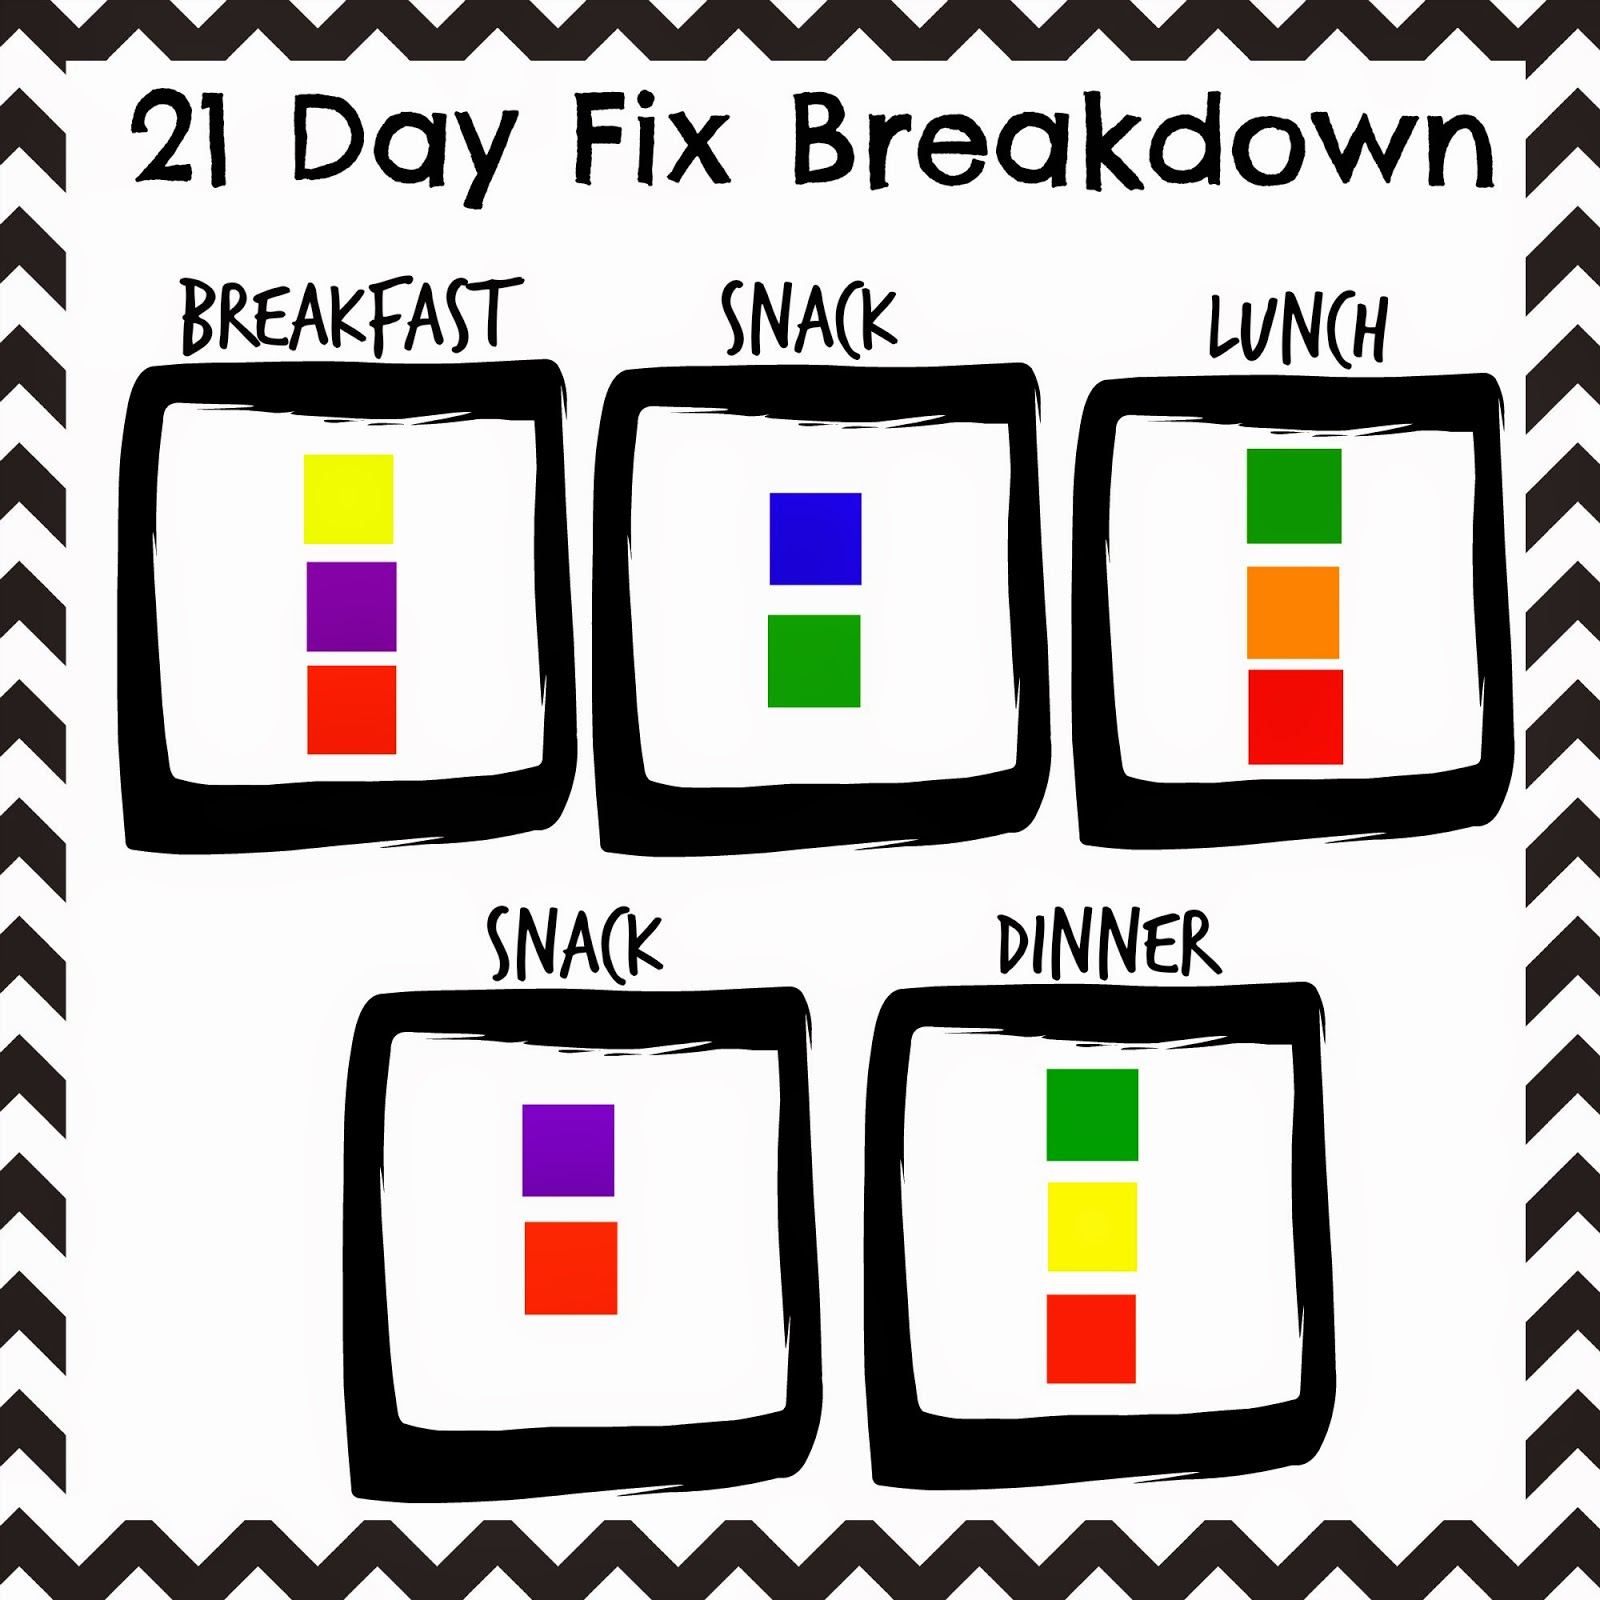 It's My Evolution: 21 Day Fix Meal Plan and Grocery List